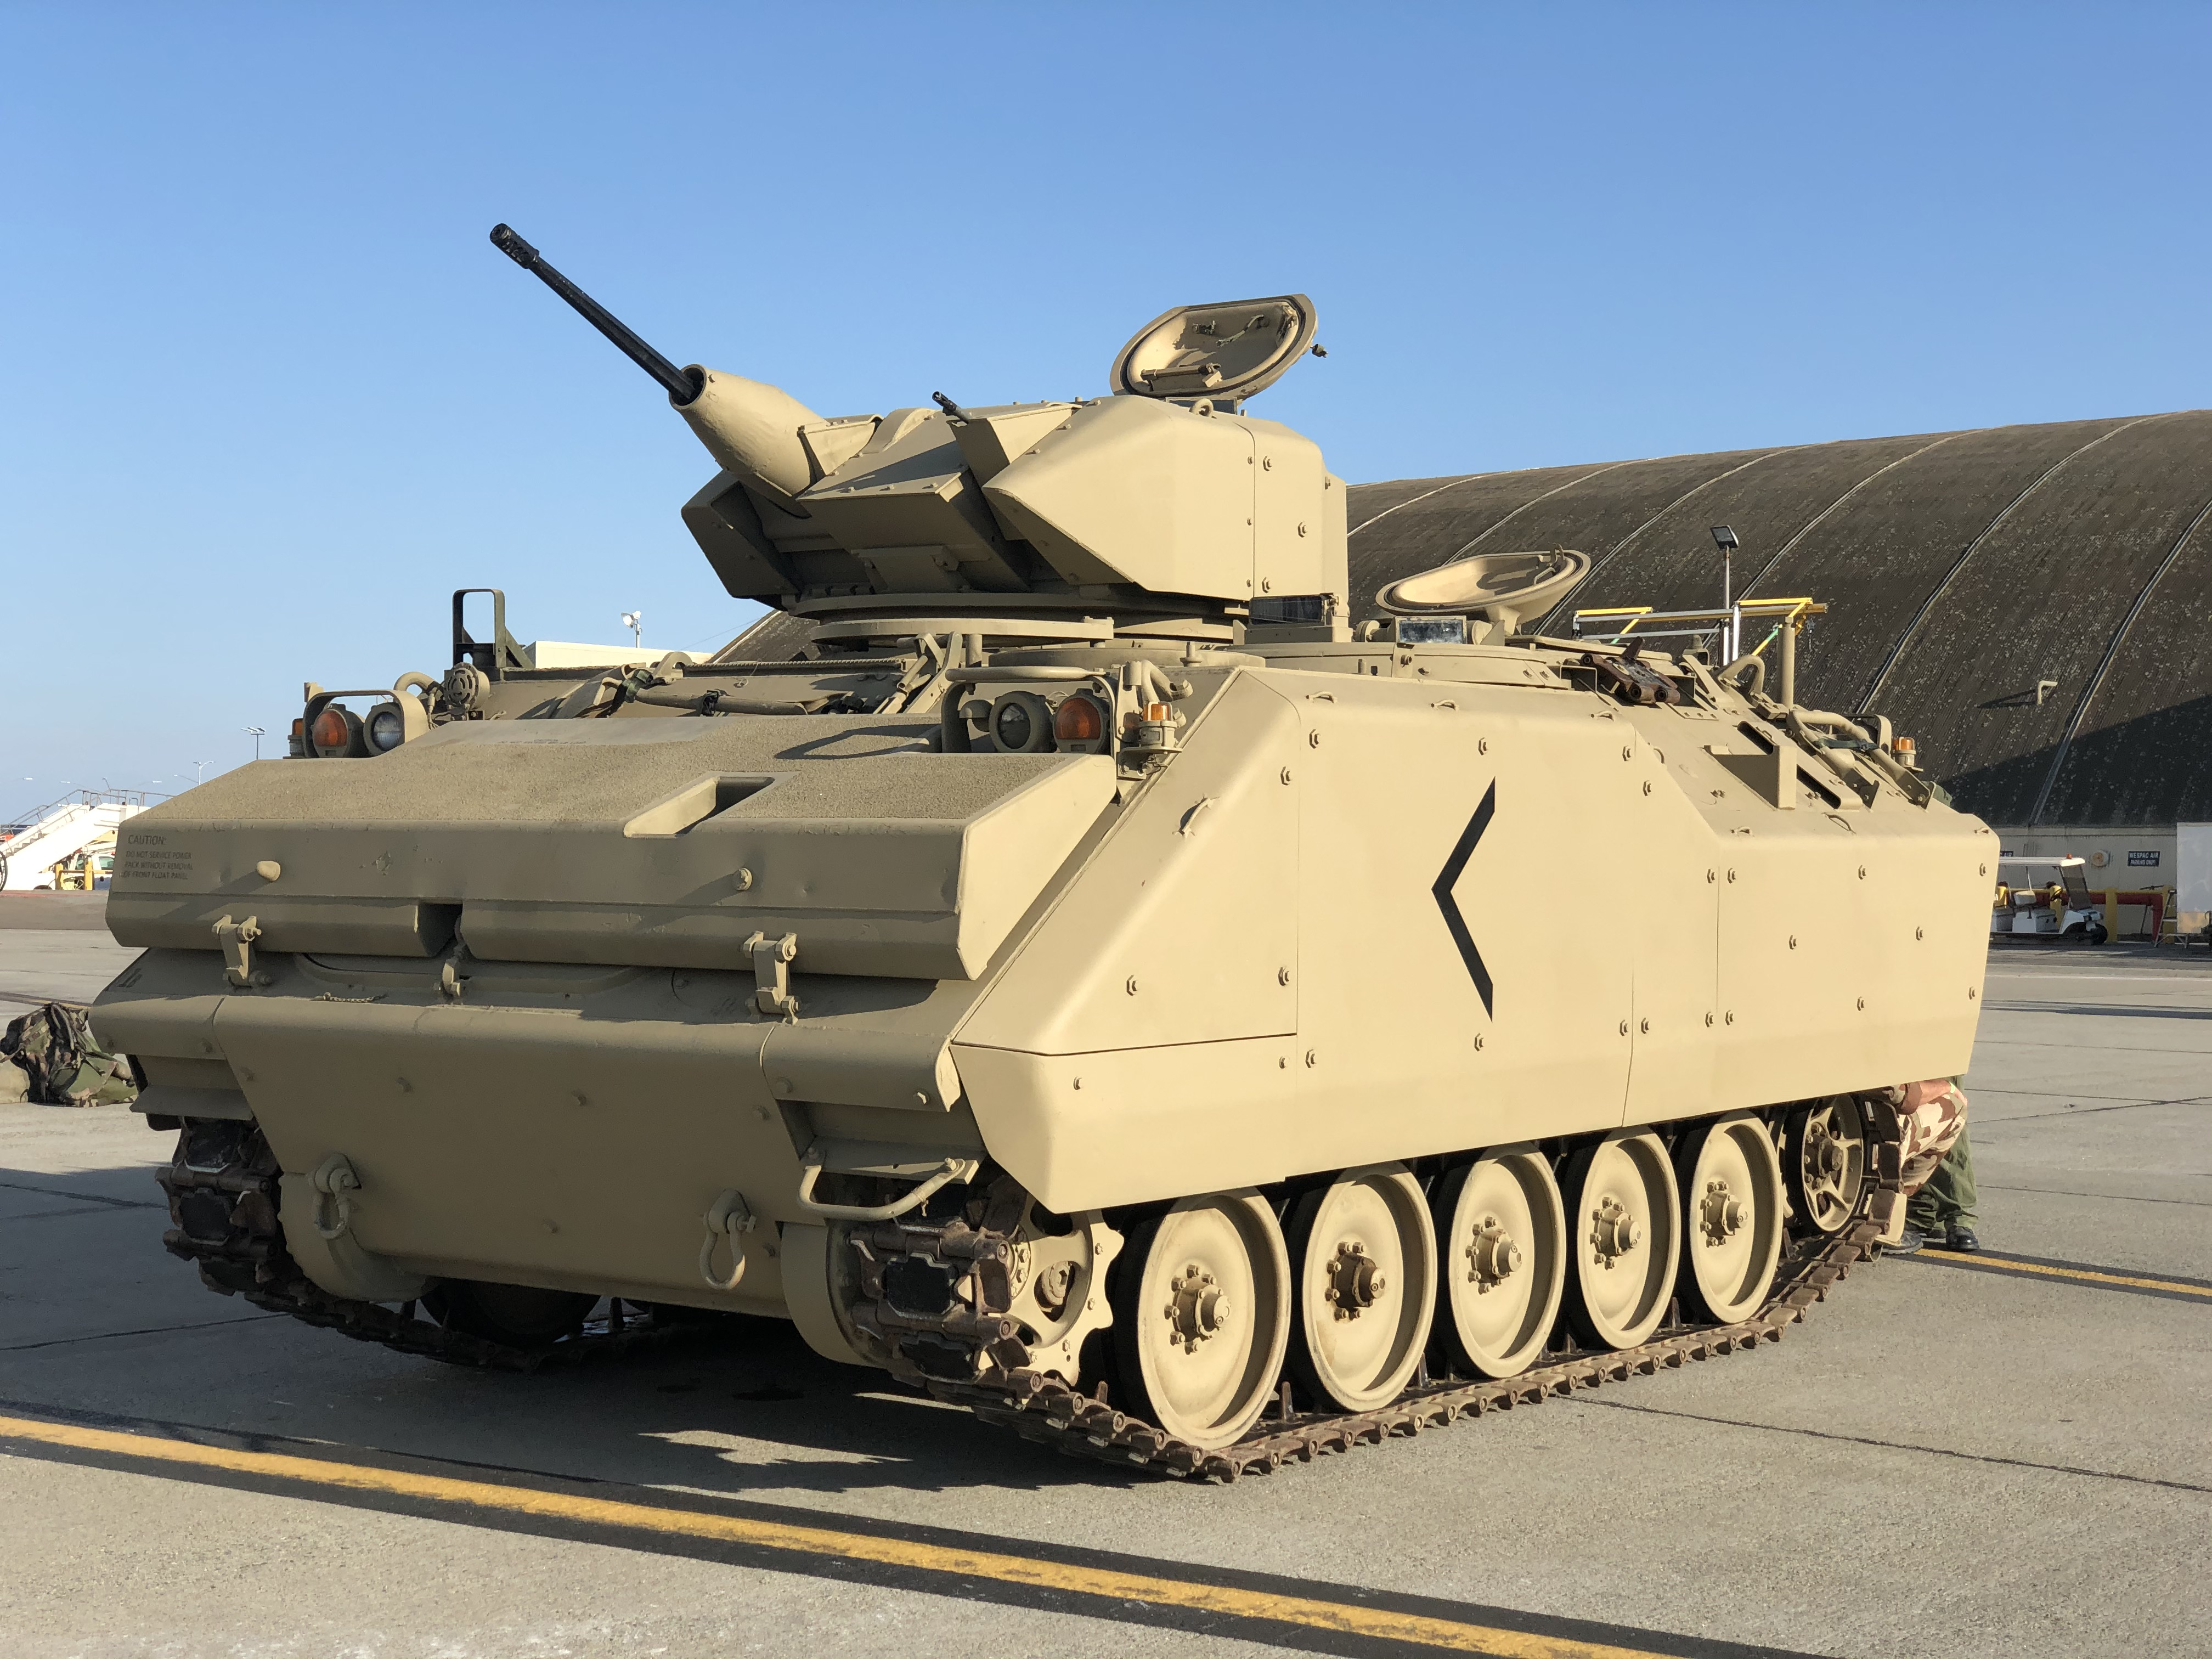 AIFV - Armored Infantry Fighting Vehicle. An EFF display vehicle.